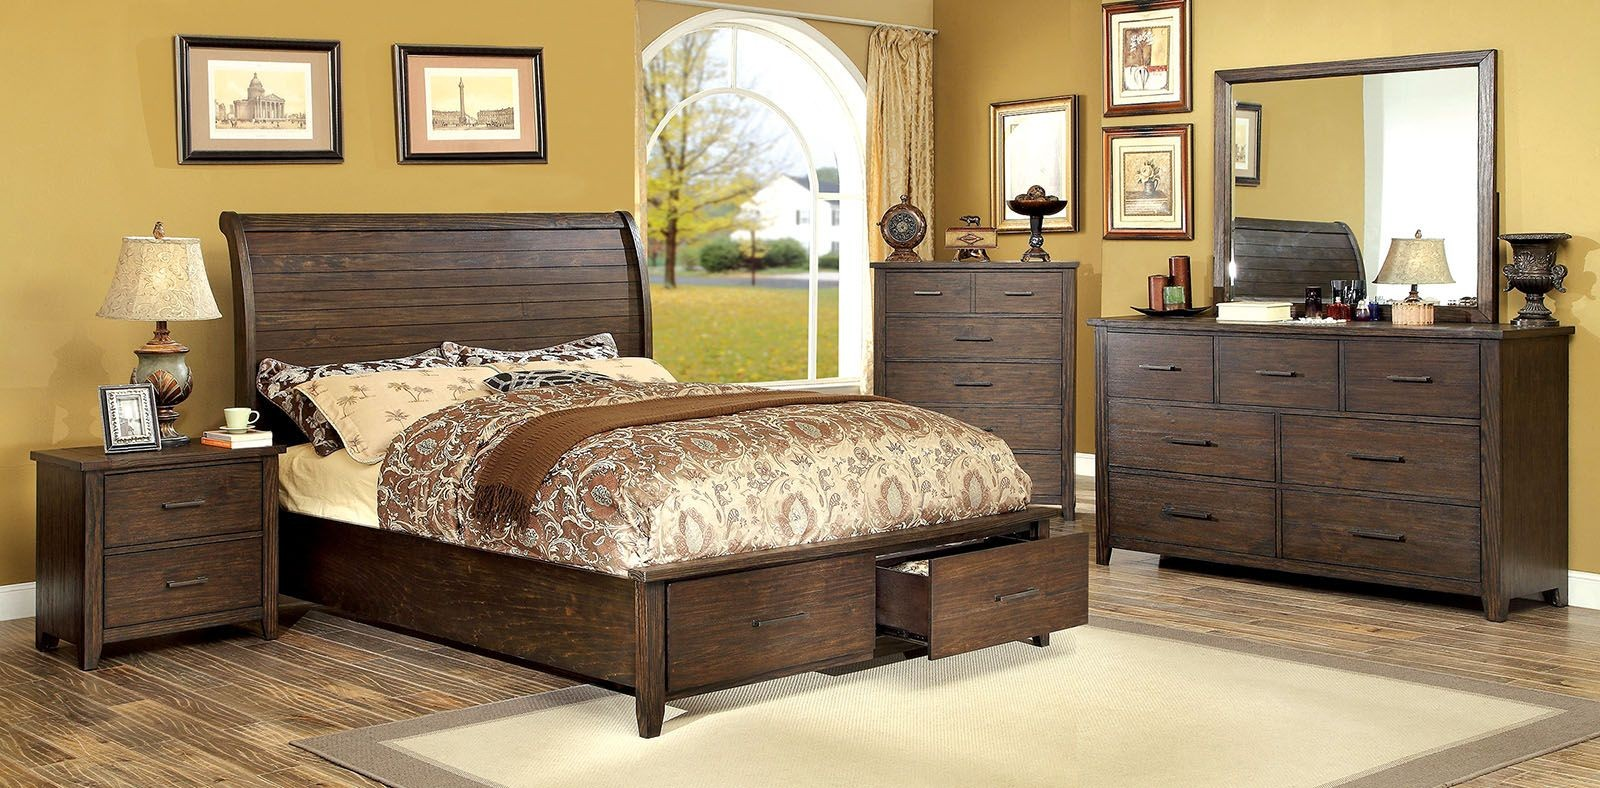 Ribeira dark walnut storage bedroom set from furniture of for Furniture of america furniture